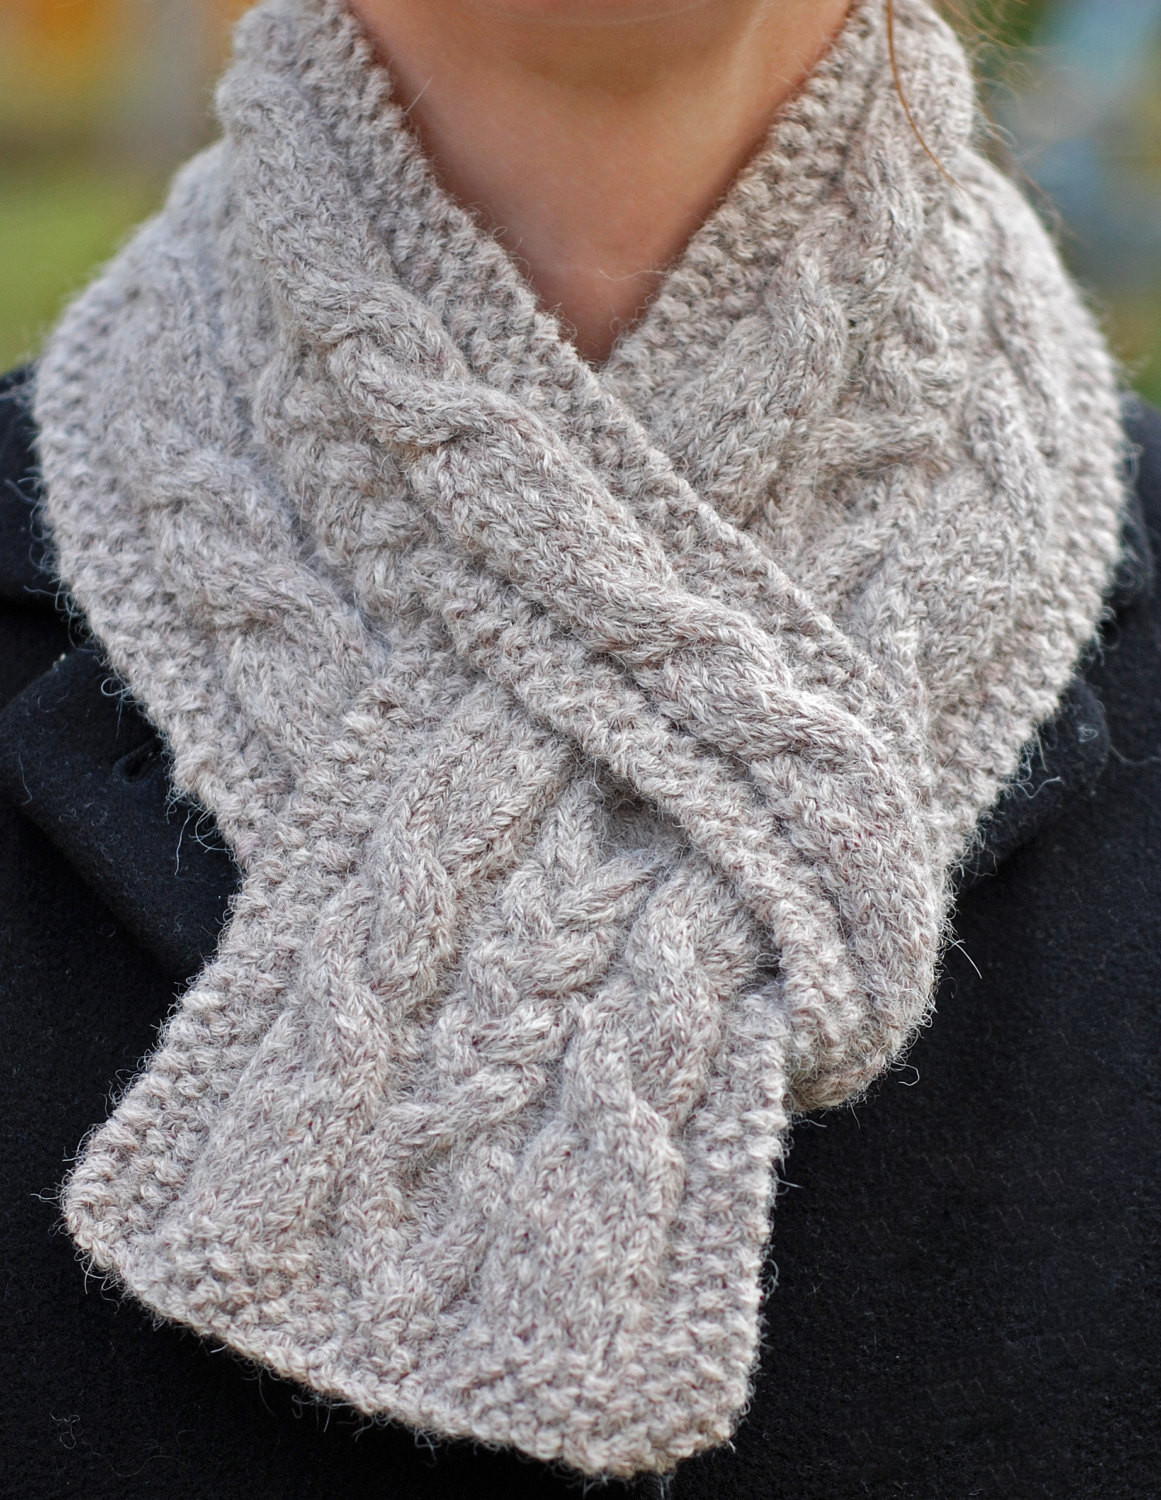 Inspirational Hiawatha Pull Through Cable Scarf Knitting Pattern Cable Knit Scarf Of Delightful 48 Ideas Cable Knit Scarf